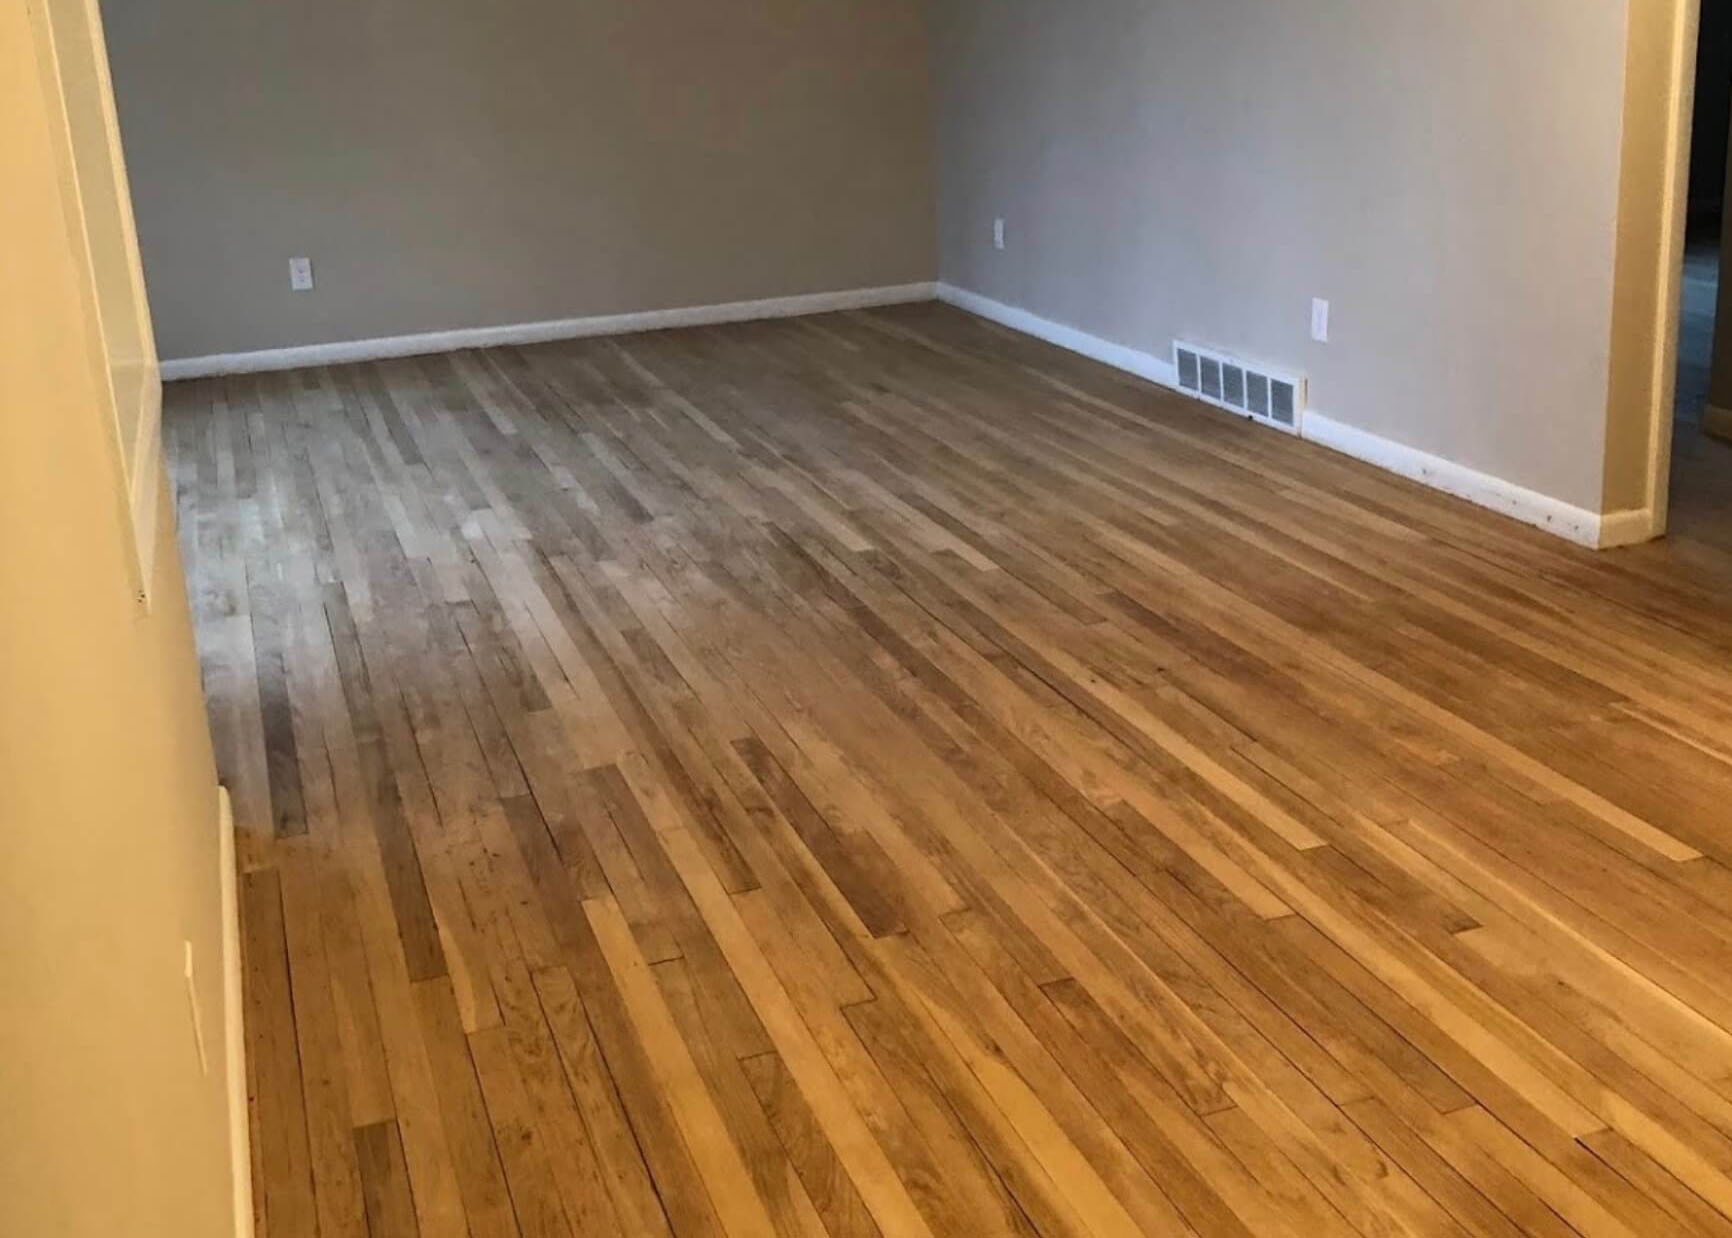 damaged wood flooring surface